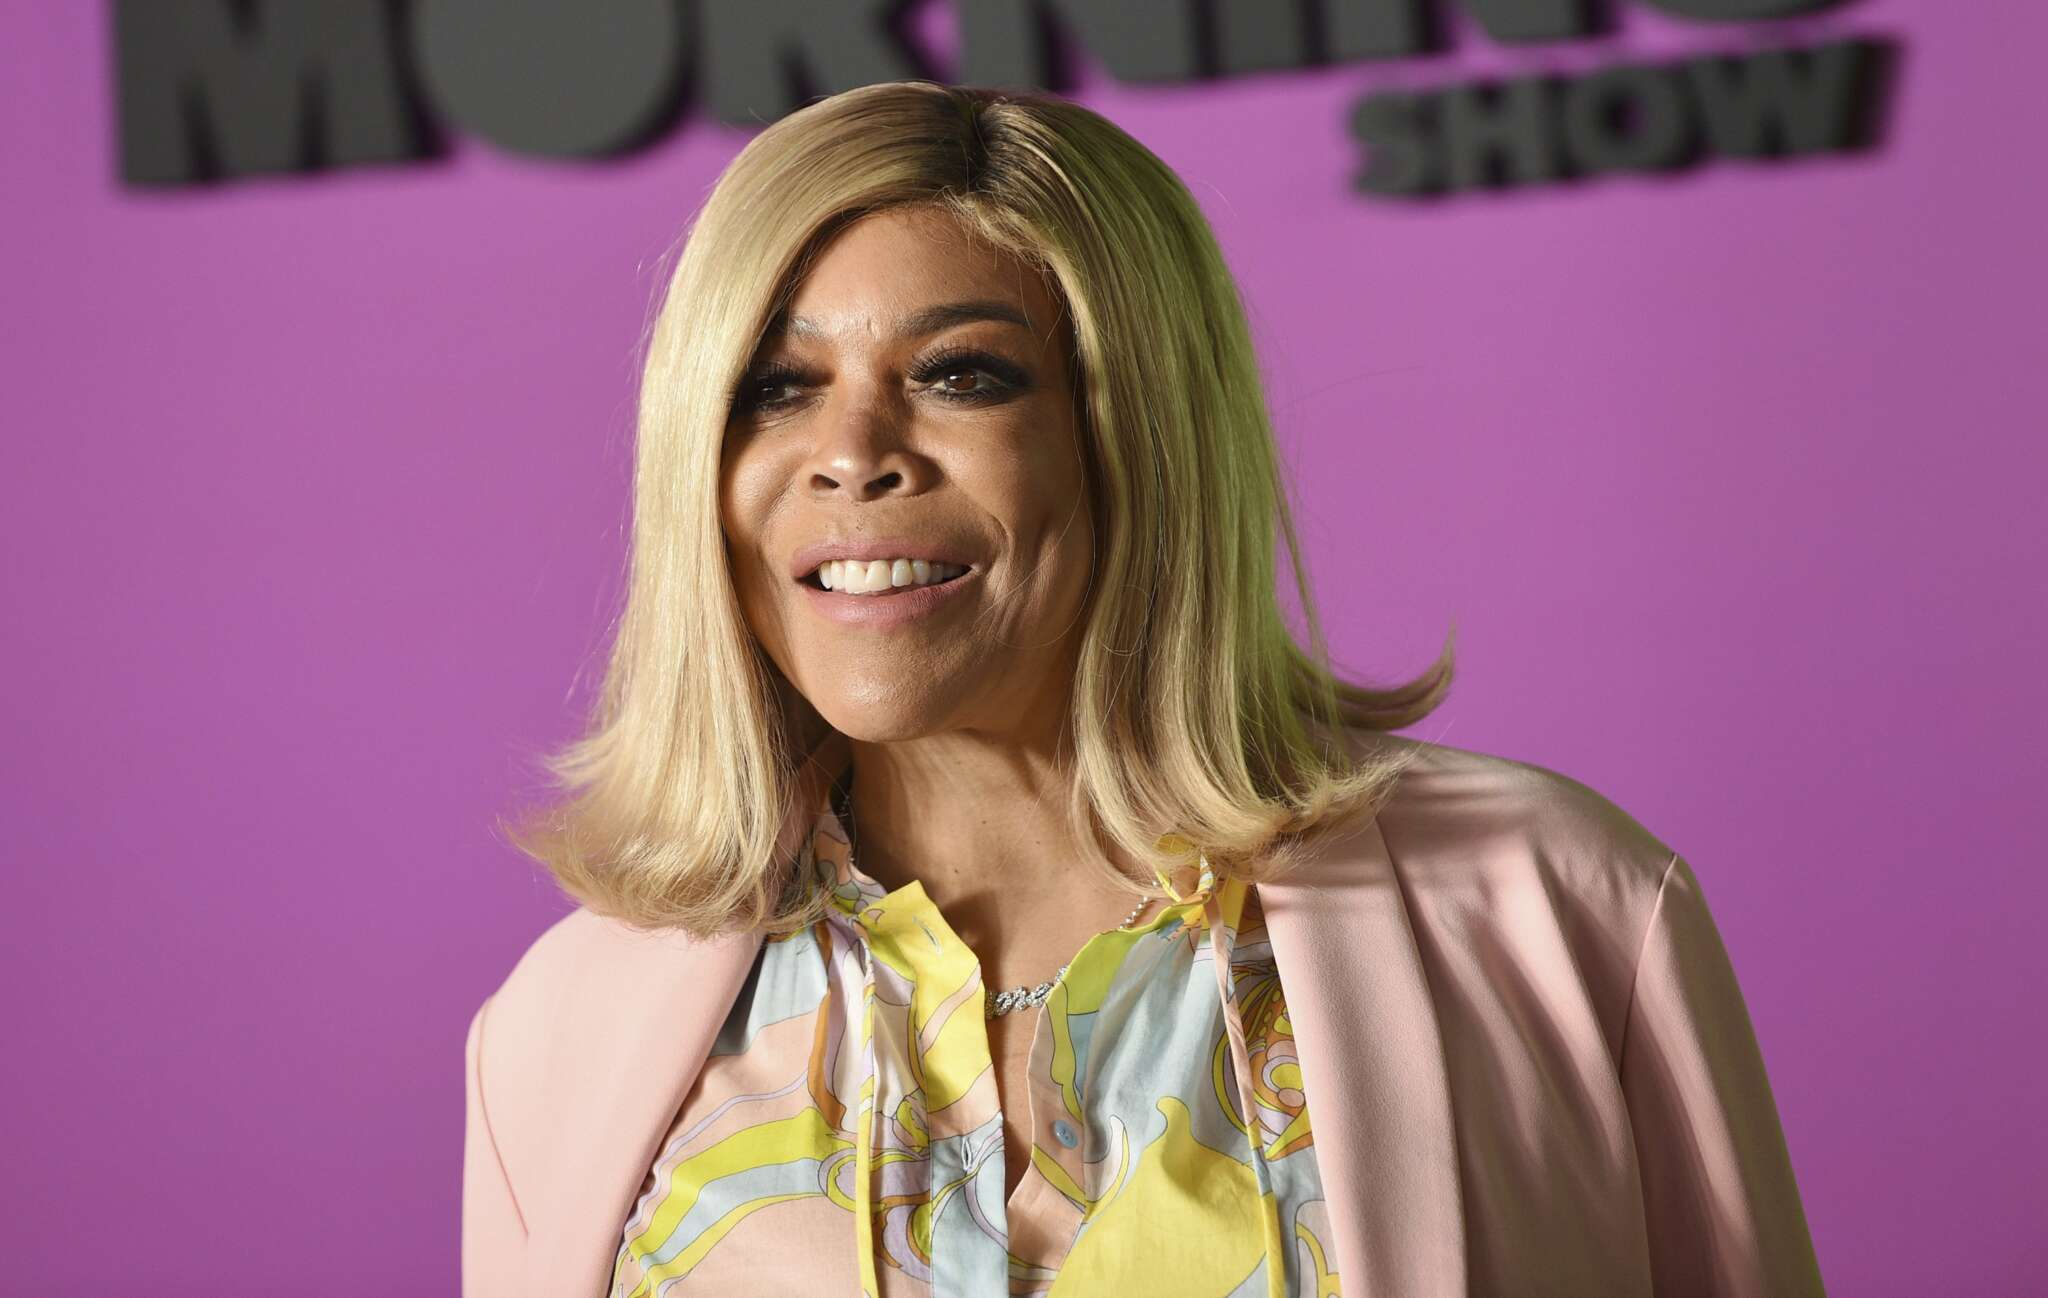 Wendy Williams Exposes Ex-Husband Kevin Hunter For Cheating On Her Even While She Was Pregnant With Their Son!